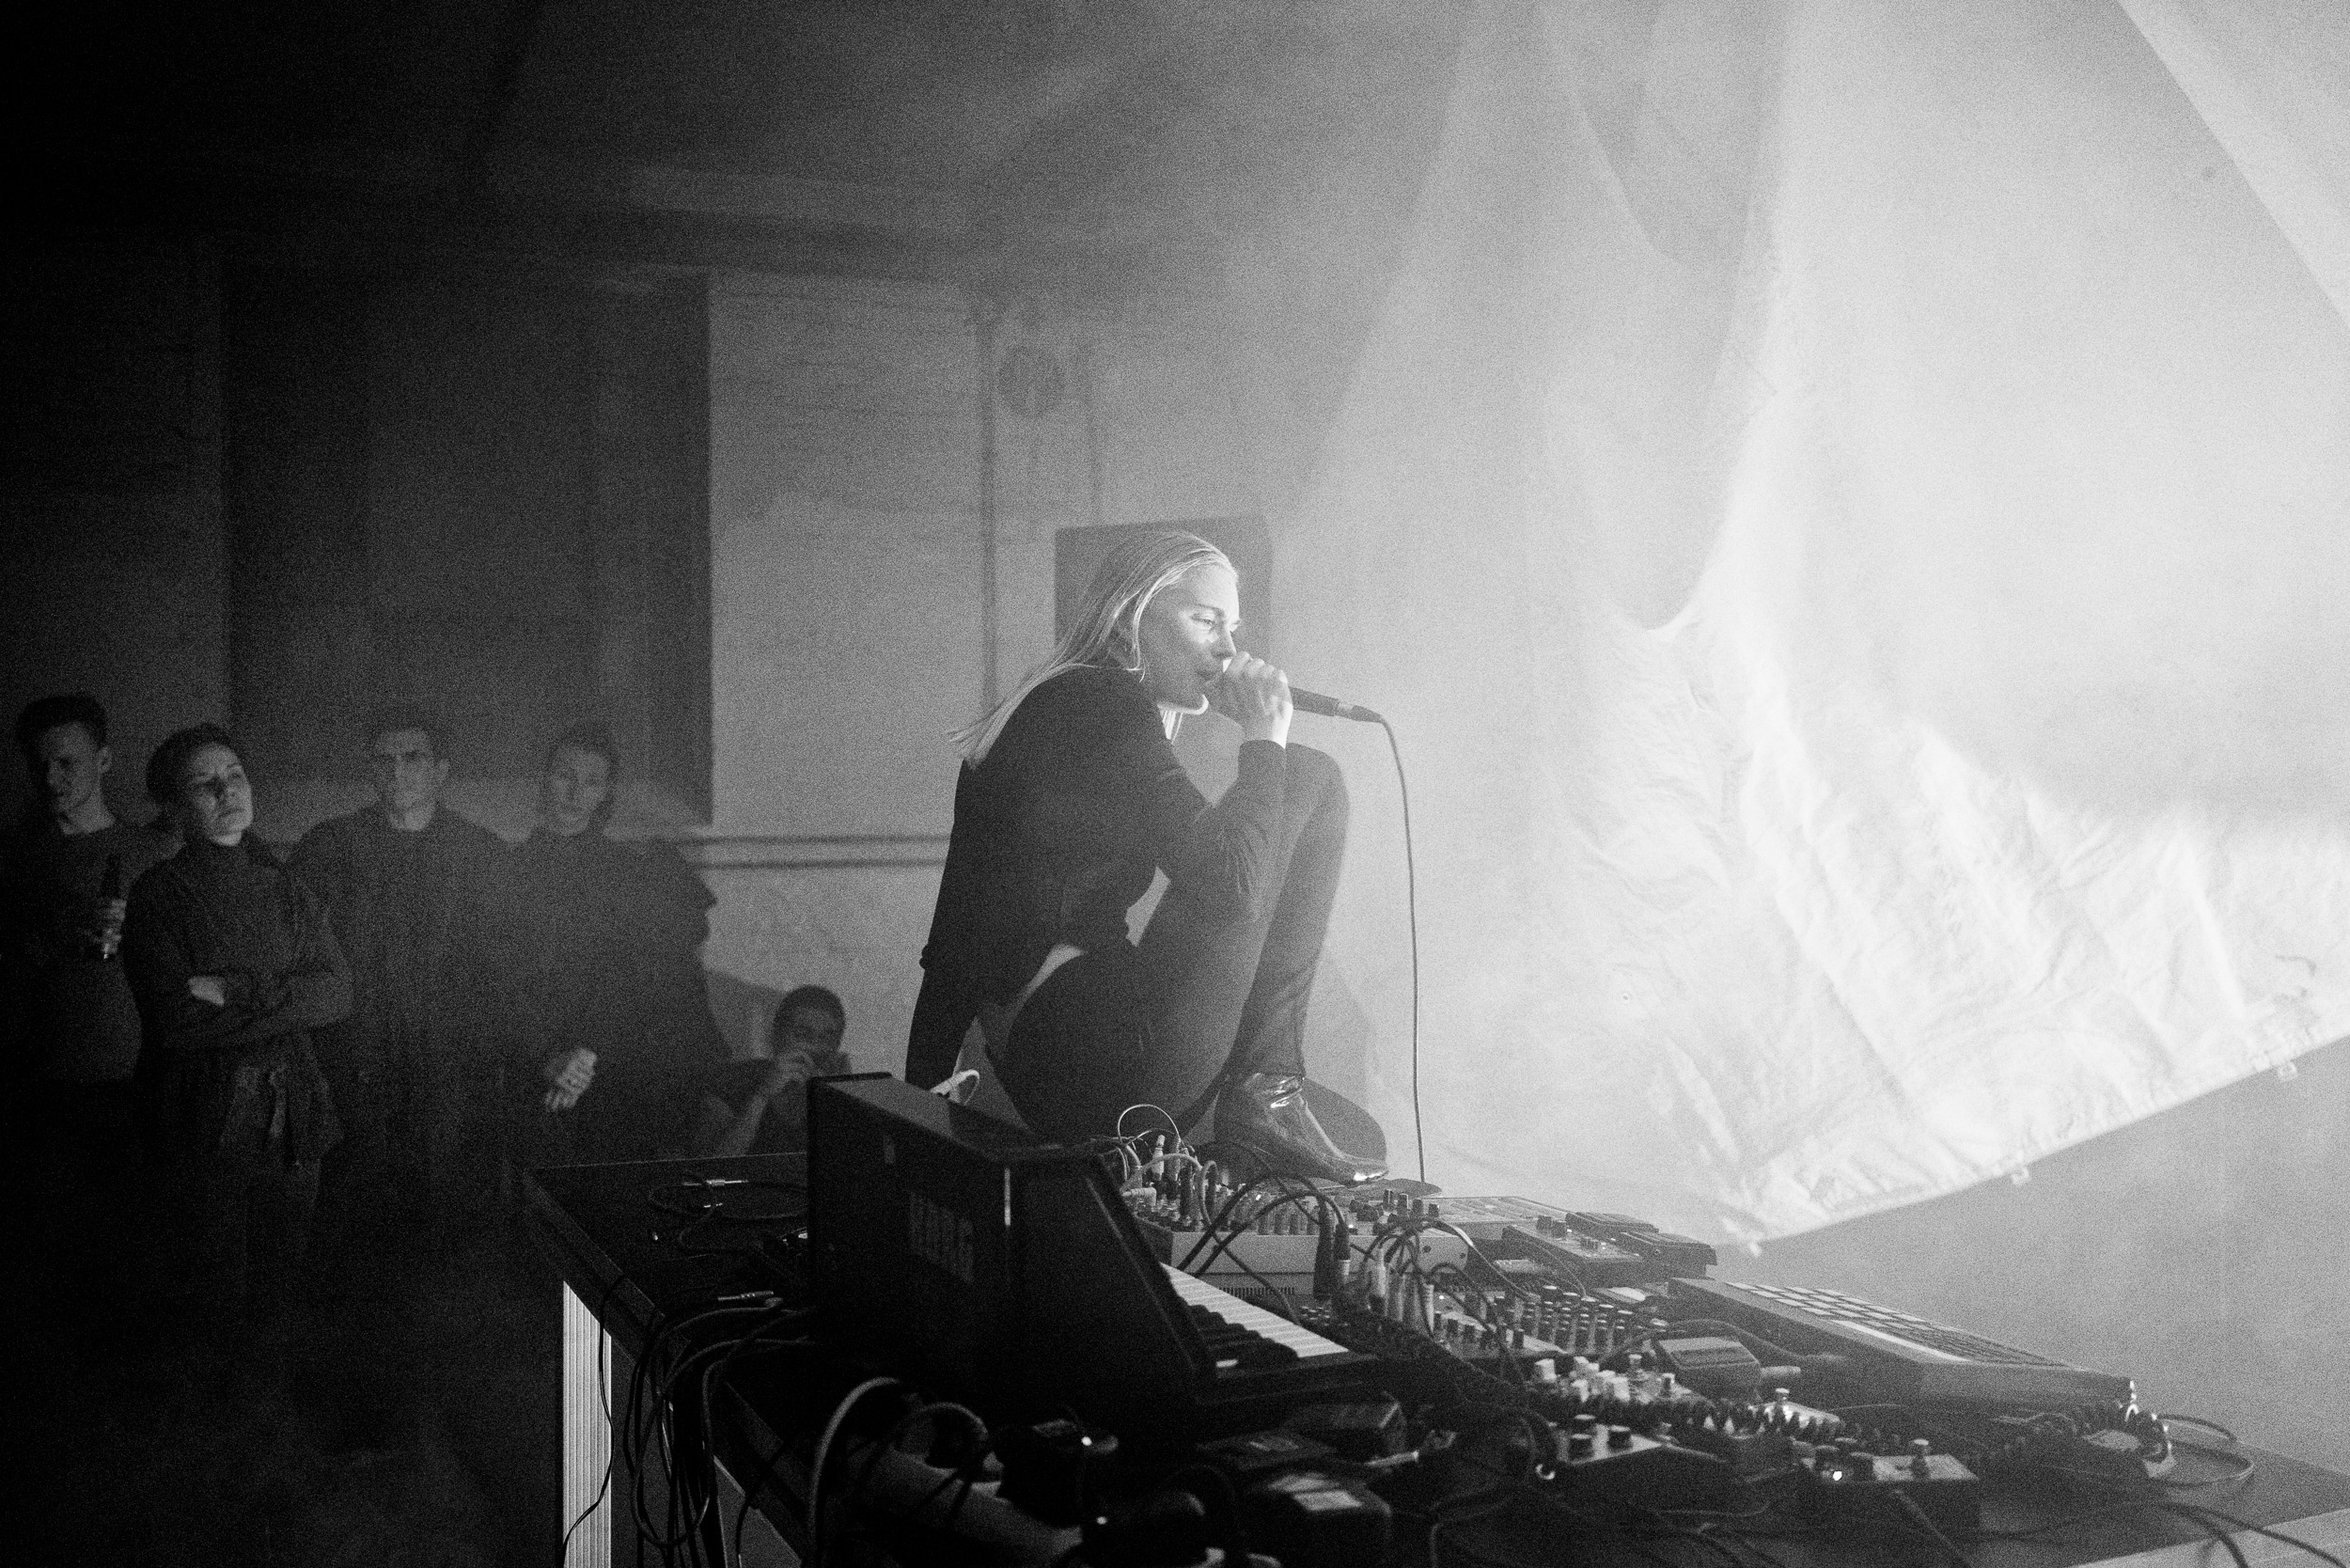 Puce Mary (photo by Morten Aagaard Krogh)